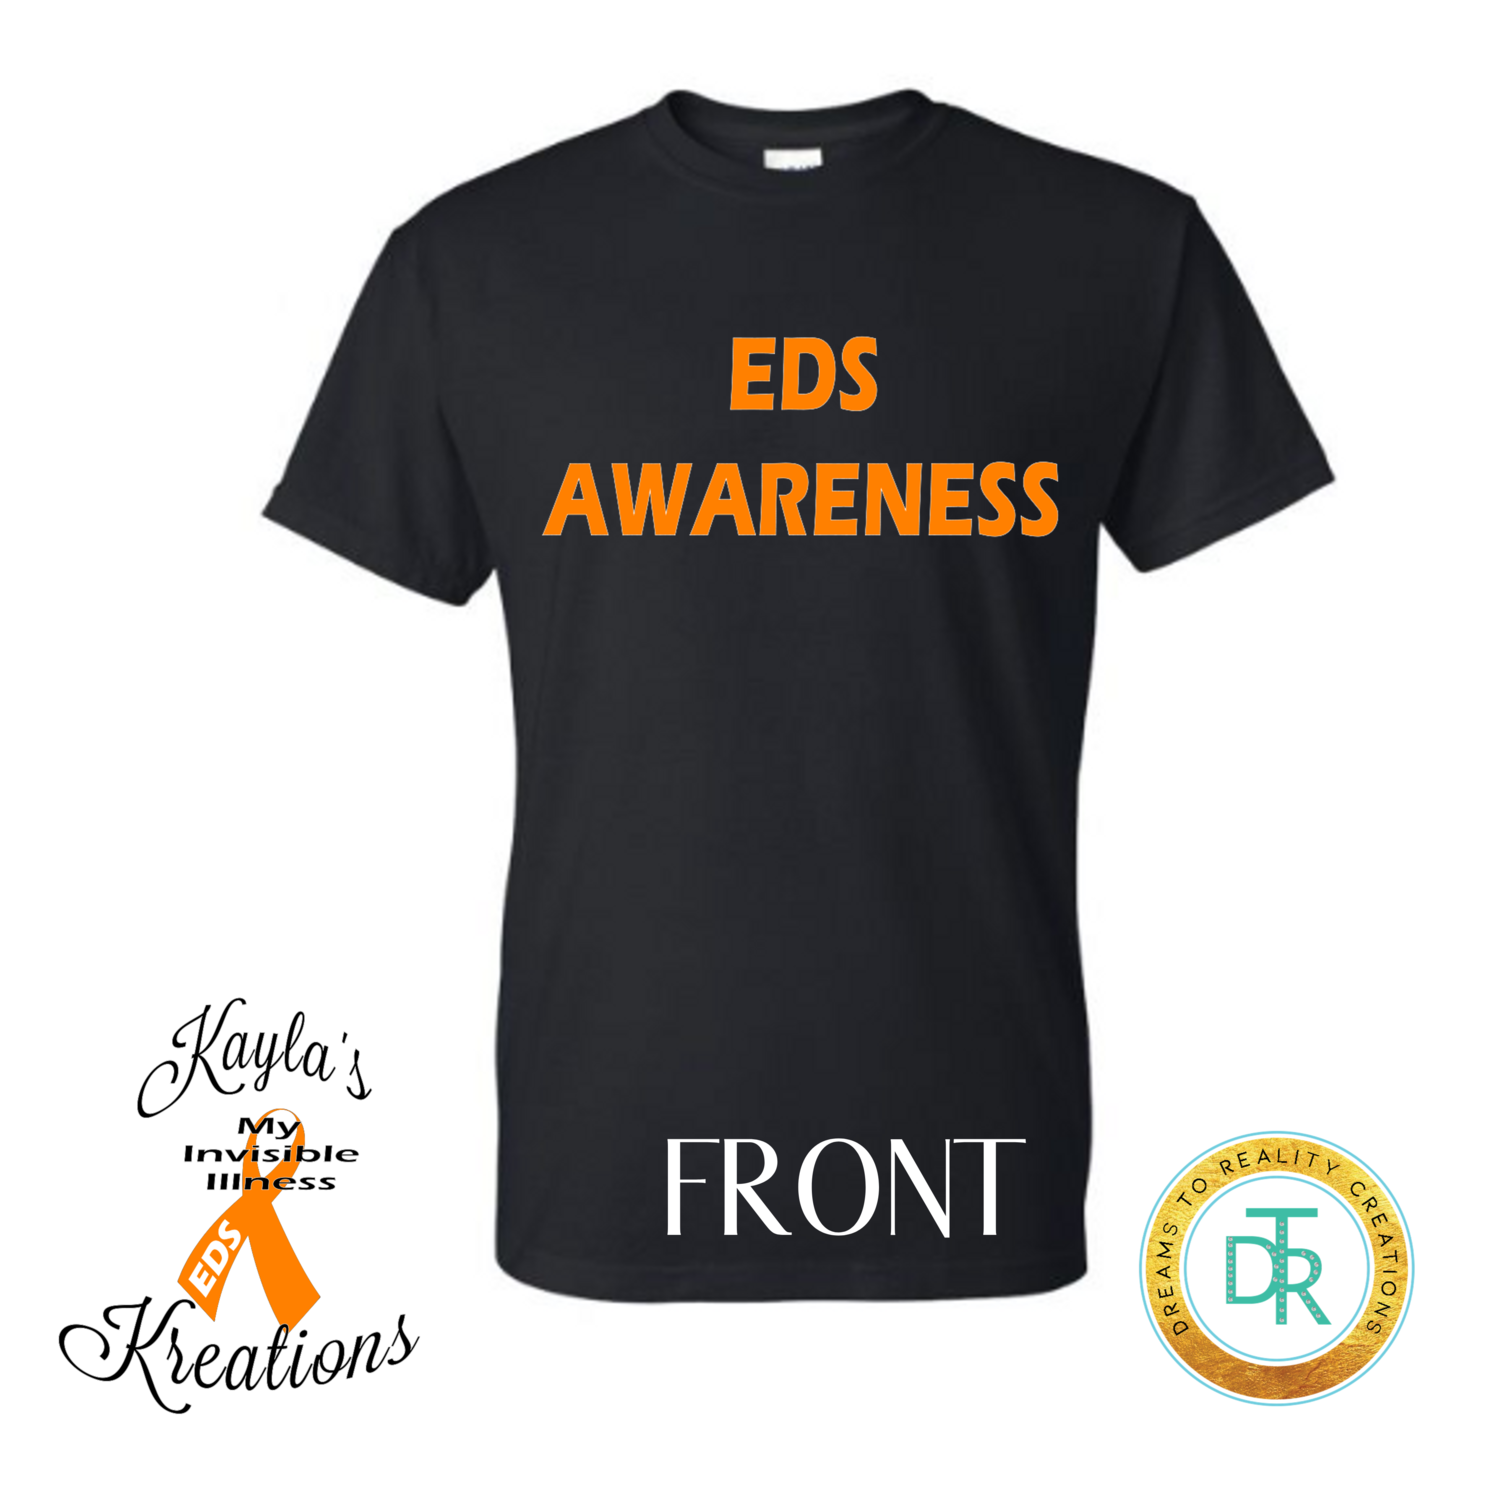 EDS Awareness Shirt by Kayla's Kreations